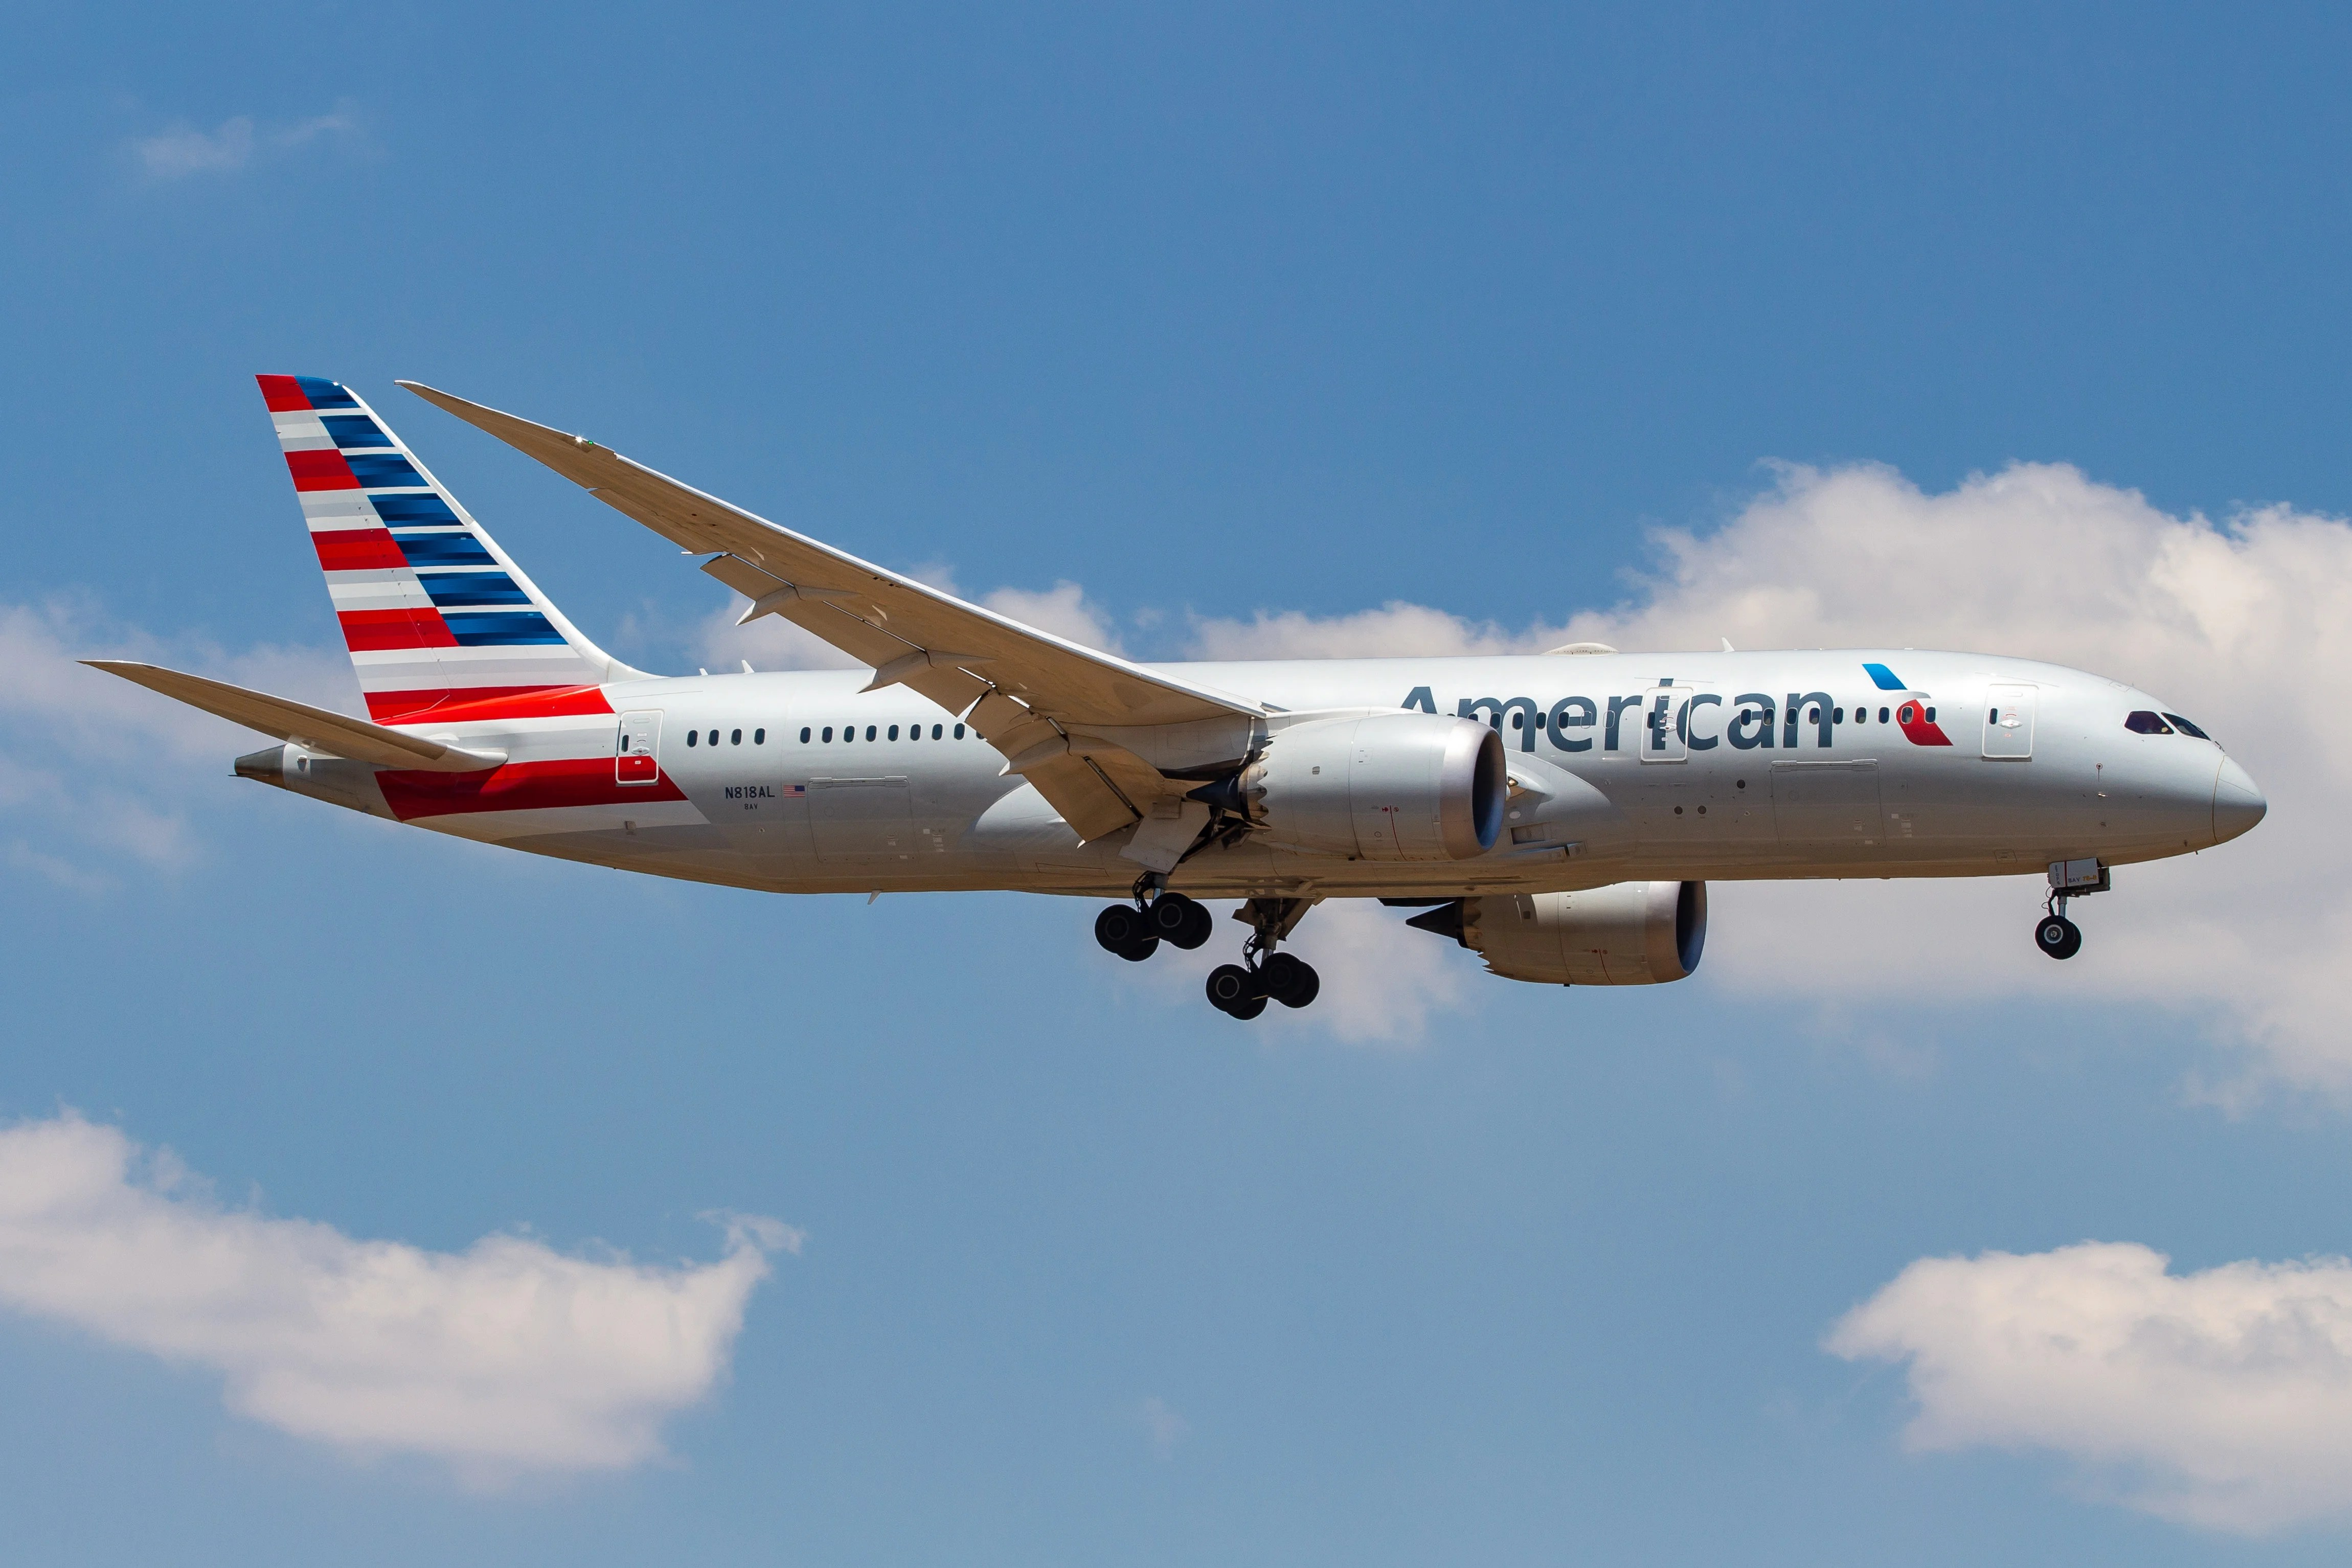 American gave me $1,000 to take a later flight, but using the voucher was a nightmare